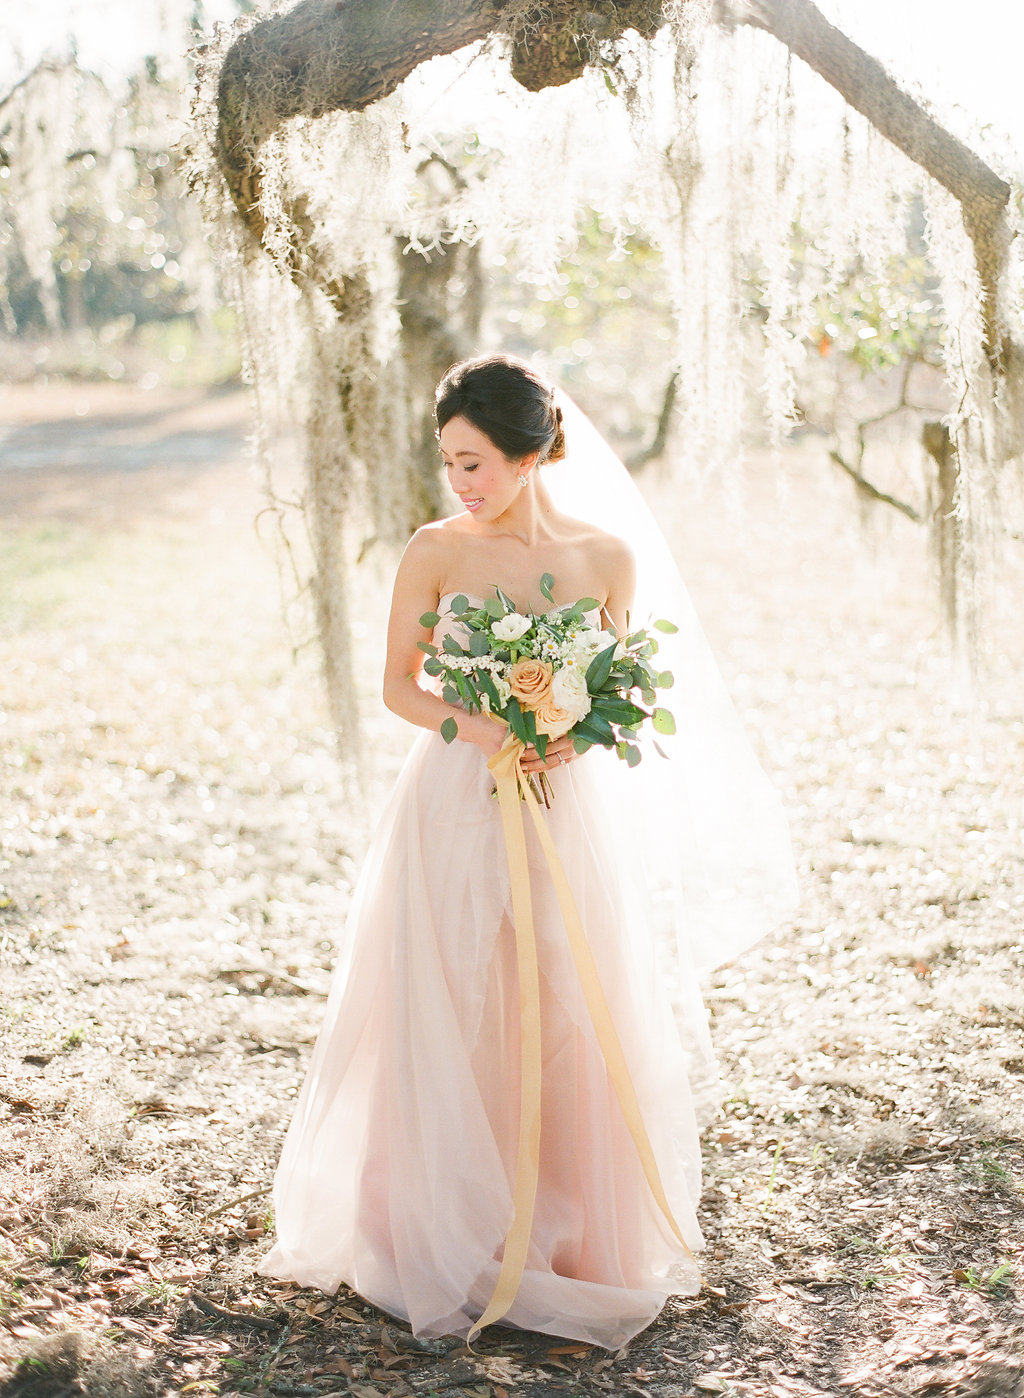 the-happy-bloom-design-studio-south-wormsloe-plantation-wedding-sarah-seven-blushing-ivory-and-beau-bridal-boutique-savannah-wedding-dresses-savannah-bridal-boutique-savannah-weddings-savannah-wedding-planner-savannah-event-planner-17.jpg